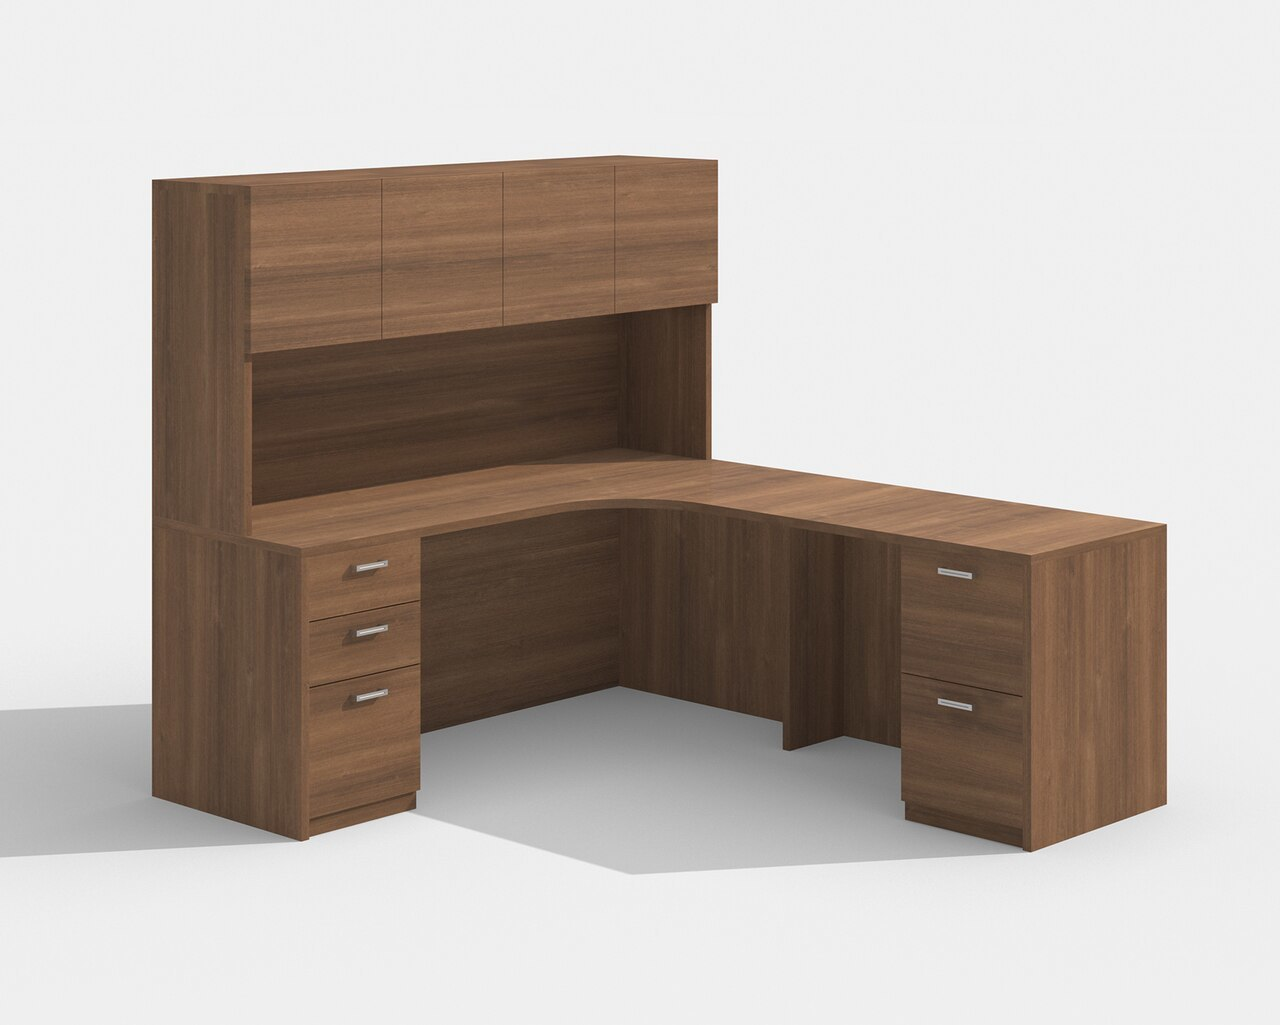 cherryman am-342 l desk with a426 hutch in walnut